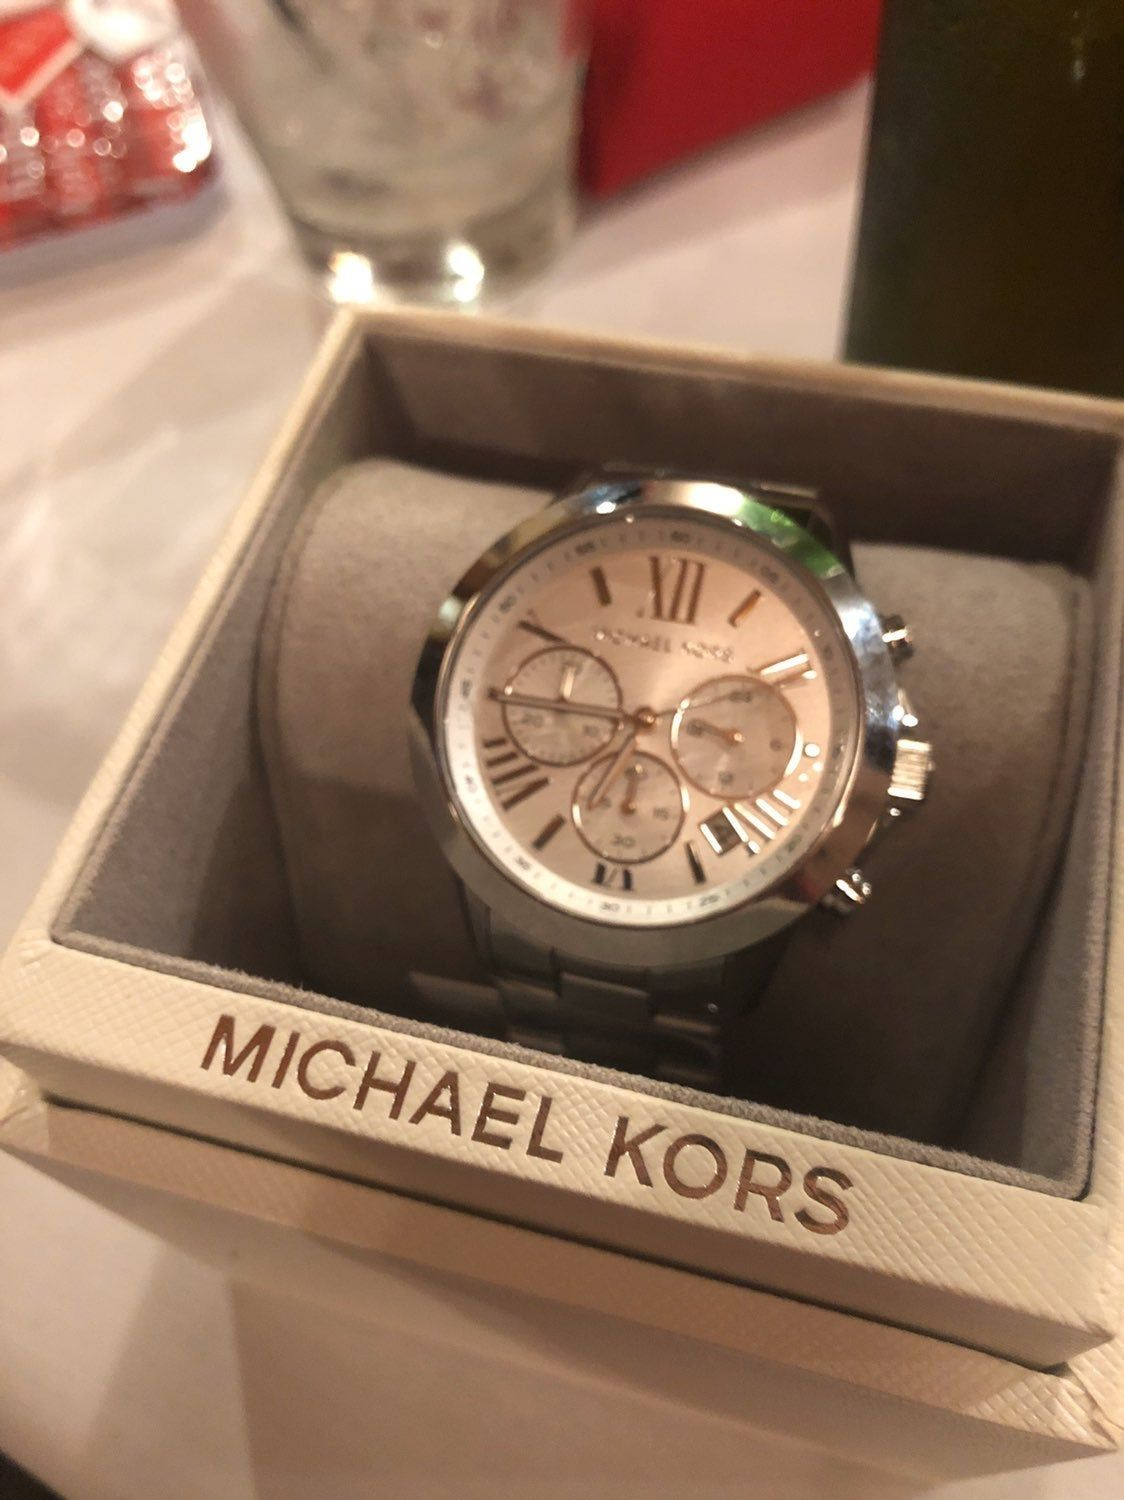 Brand new. Never worn. Comes with box. Michael kors